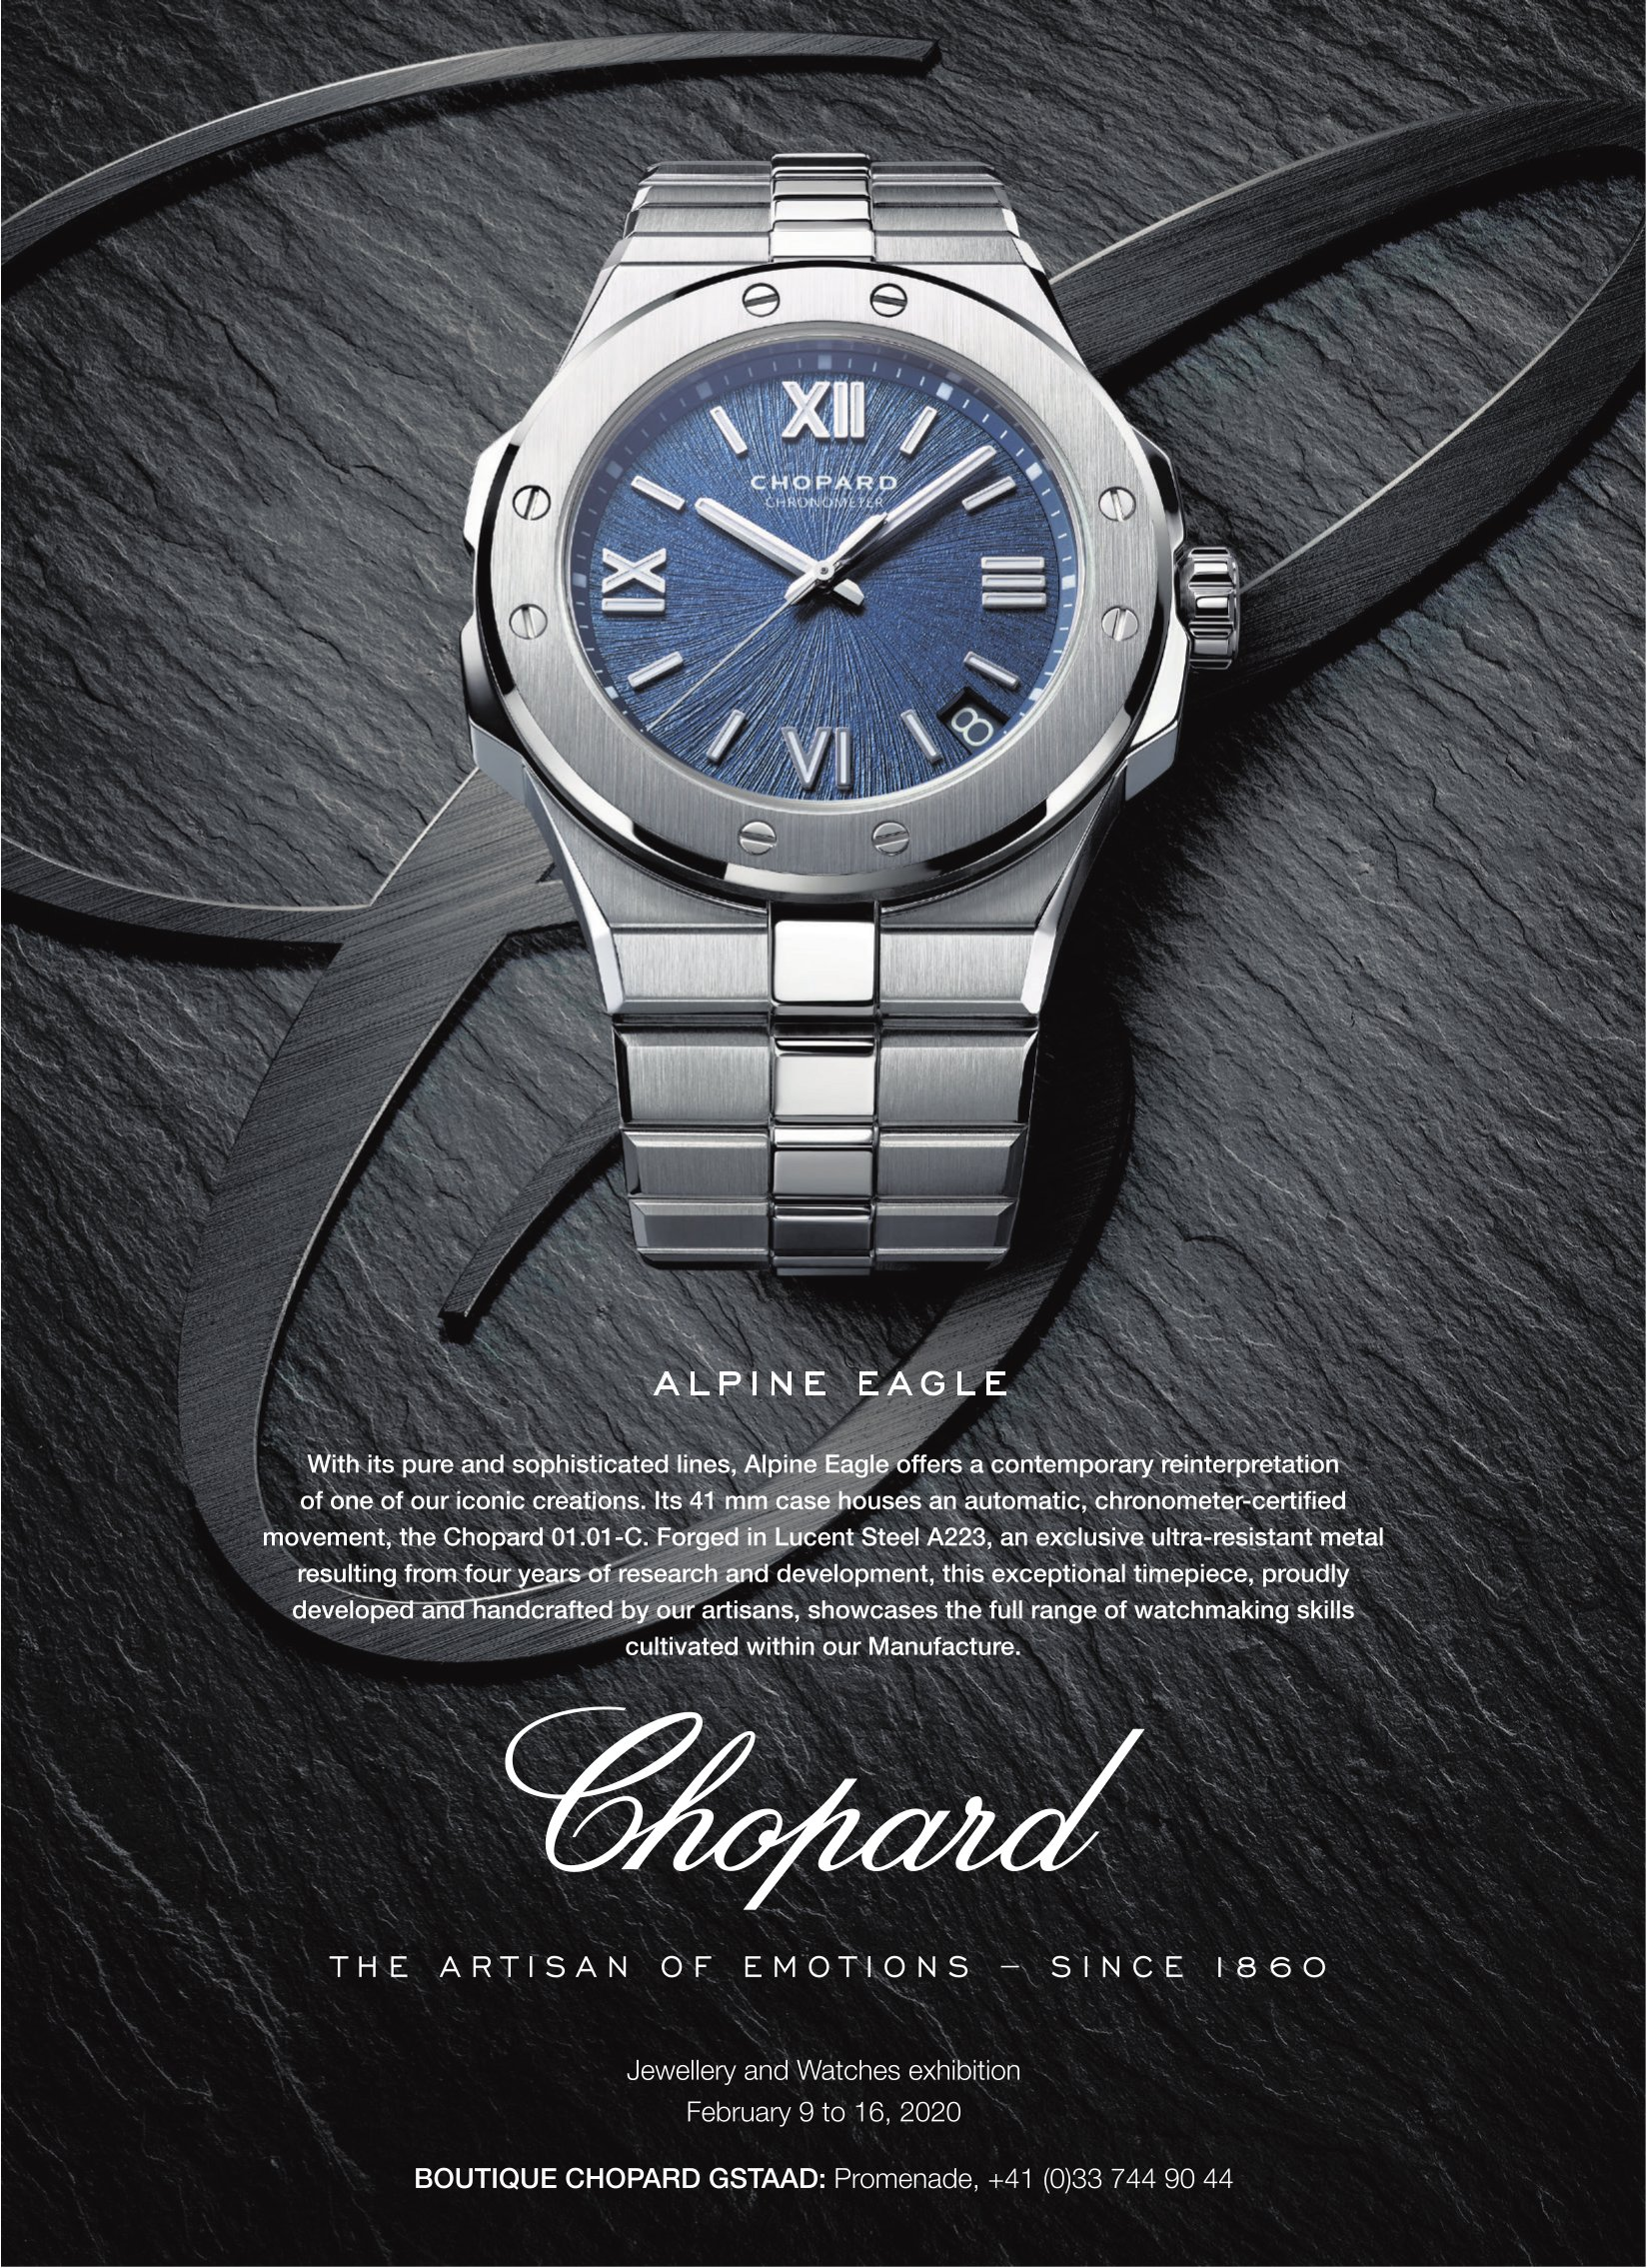 BOUTIQUE CHOPARD GSTAAD - ALPINE EAGLE